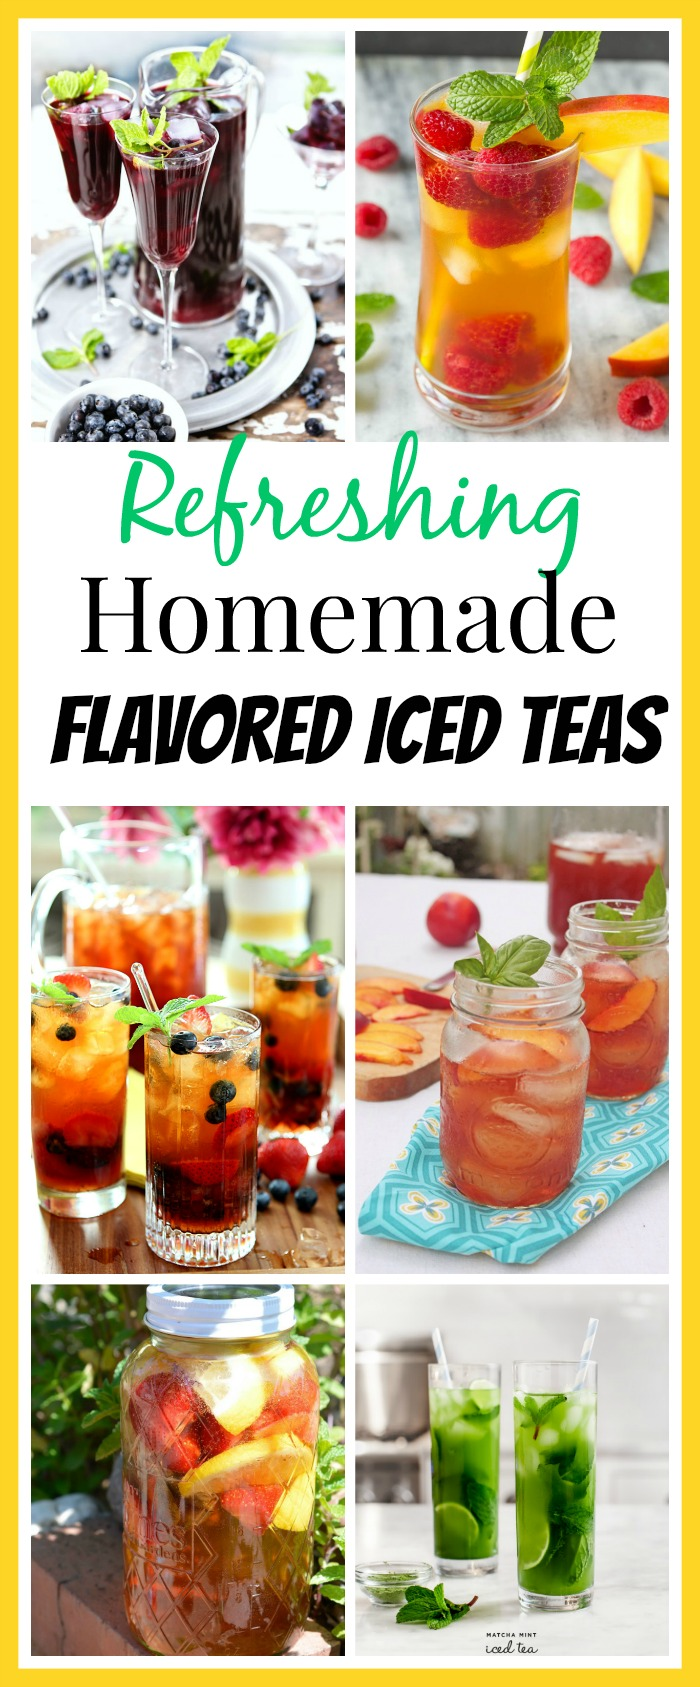 10 Refreshing Flavored Ice Tea Recipes-Sipping some ice cold tea is one way to beat the heat of summer! Need some new ideas for cold refreshing flavored ice tea recipes? You have to give these tea recipes a try if you're used to just having plain iced tea (sweet in the South).